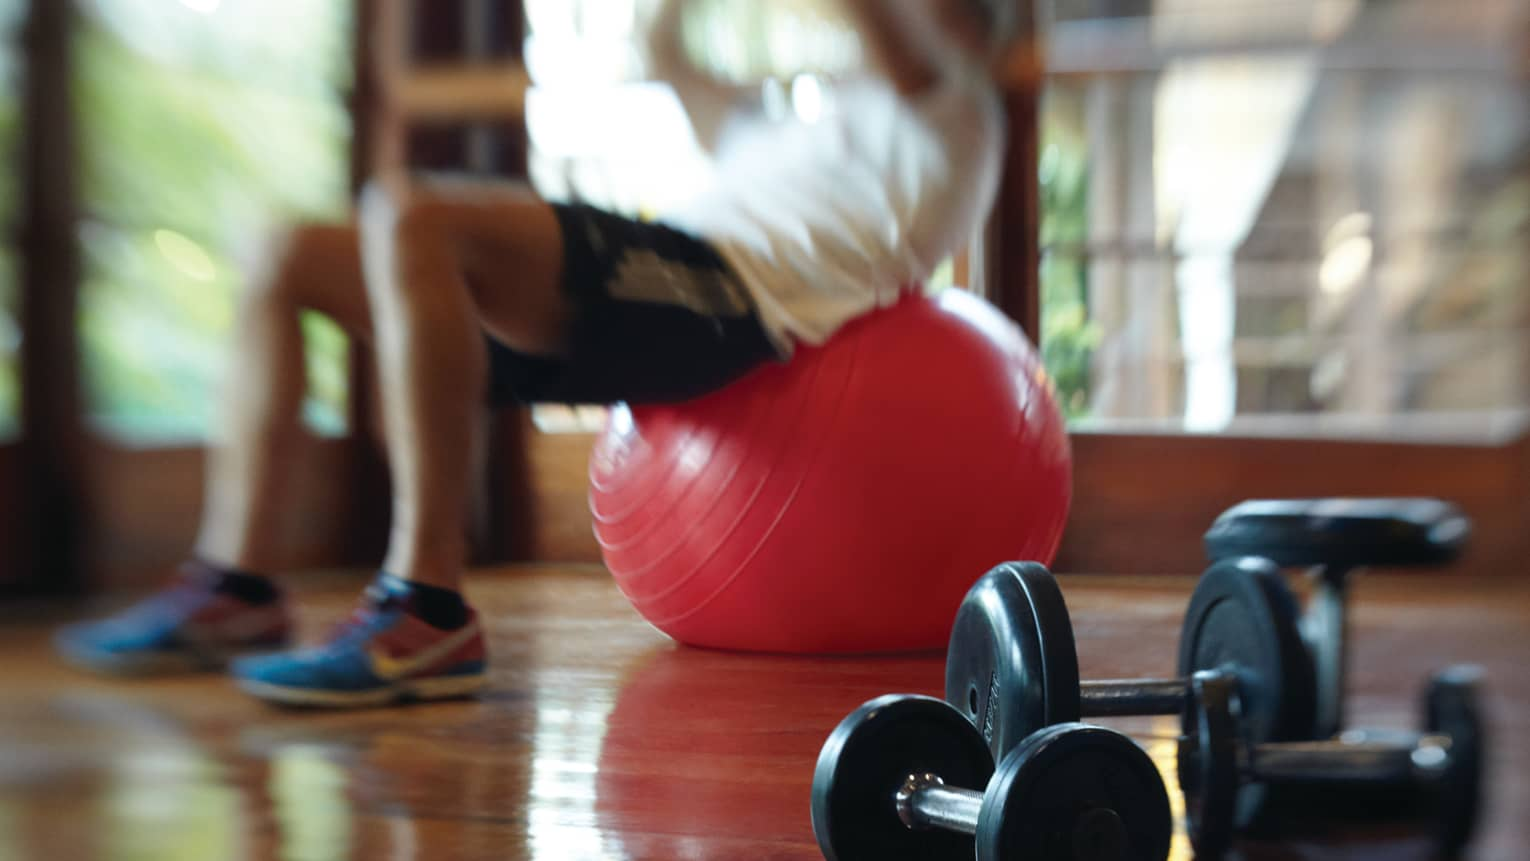 Blurry image of man in exercise clothes balancing his back on red pilates ball in Fitness Centre